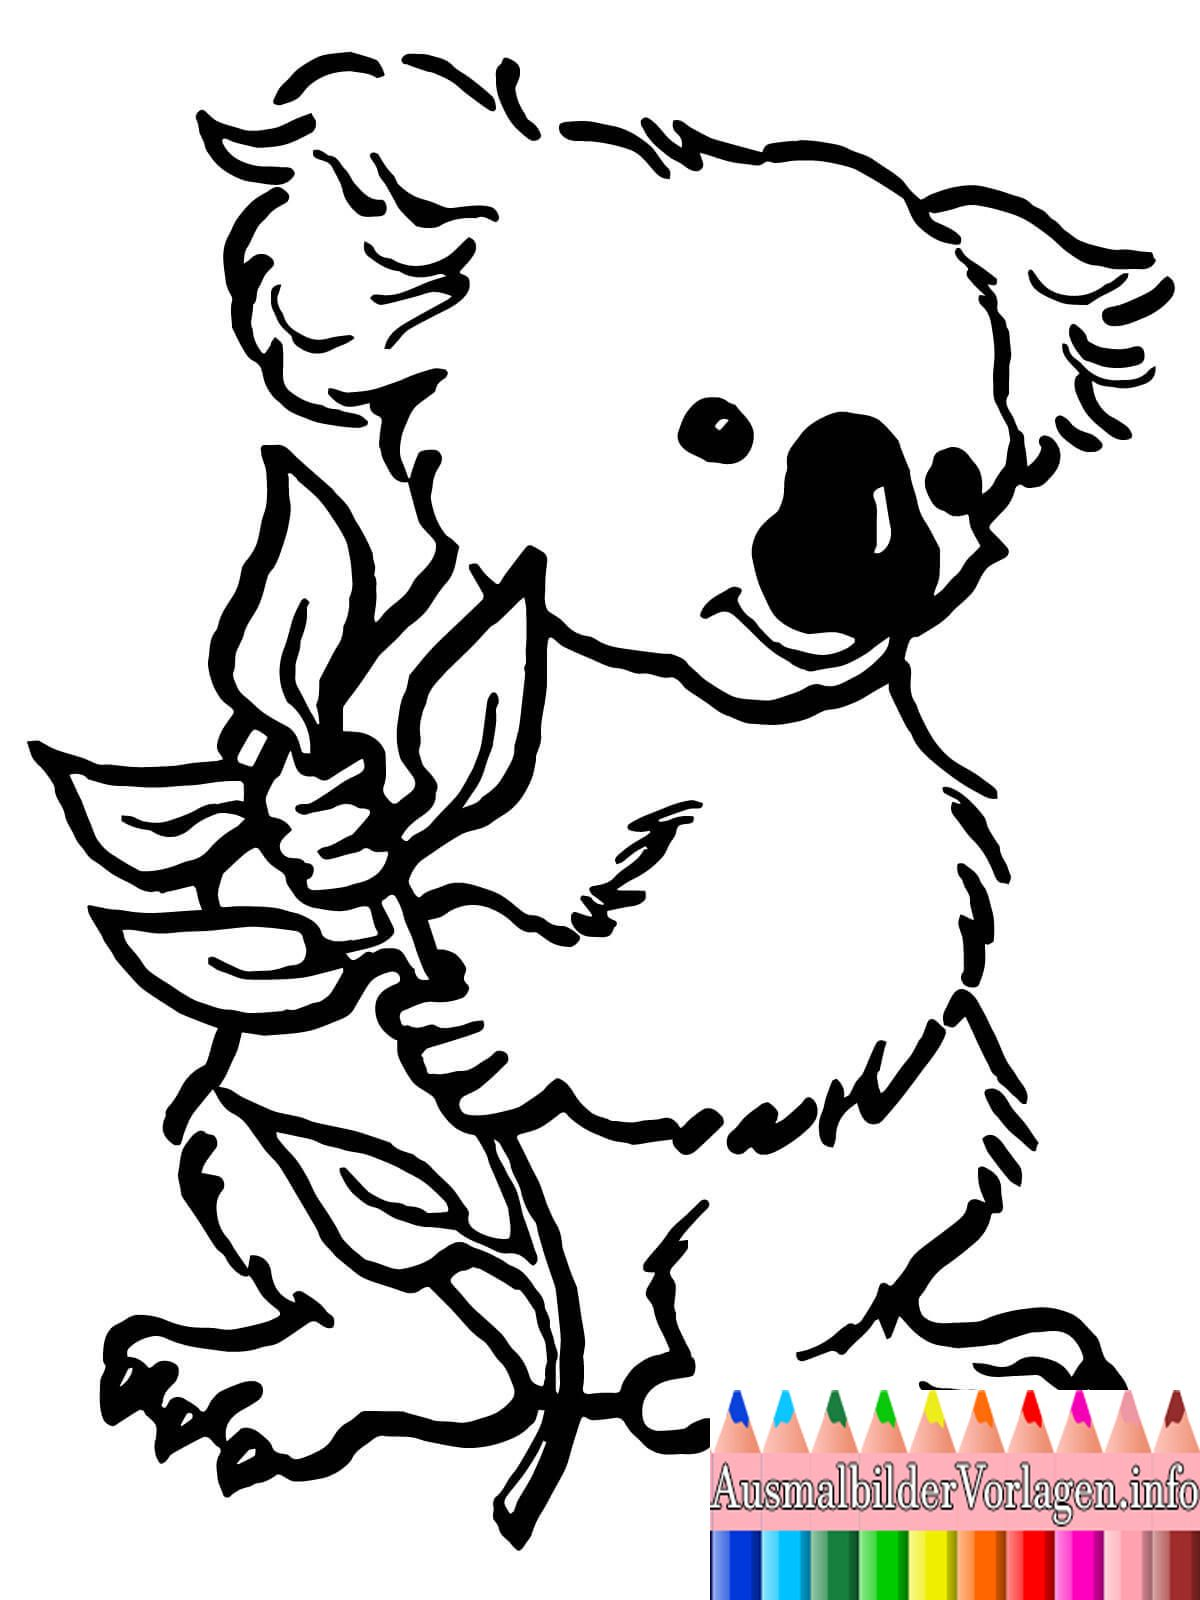 Koala Malvorlage Ausmalbilder Coloring Pages Coloring Pages For